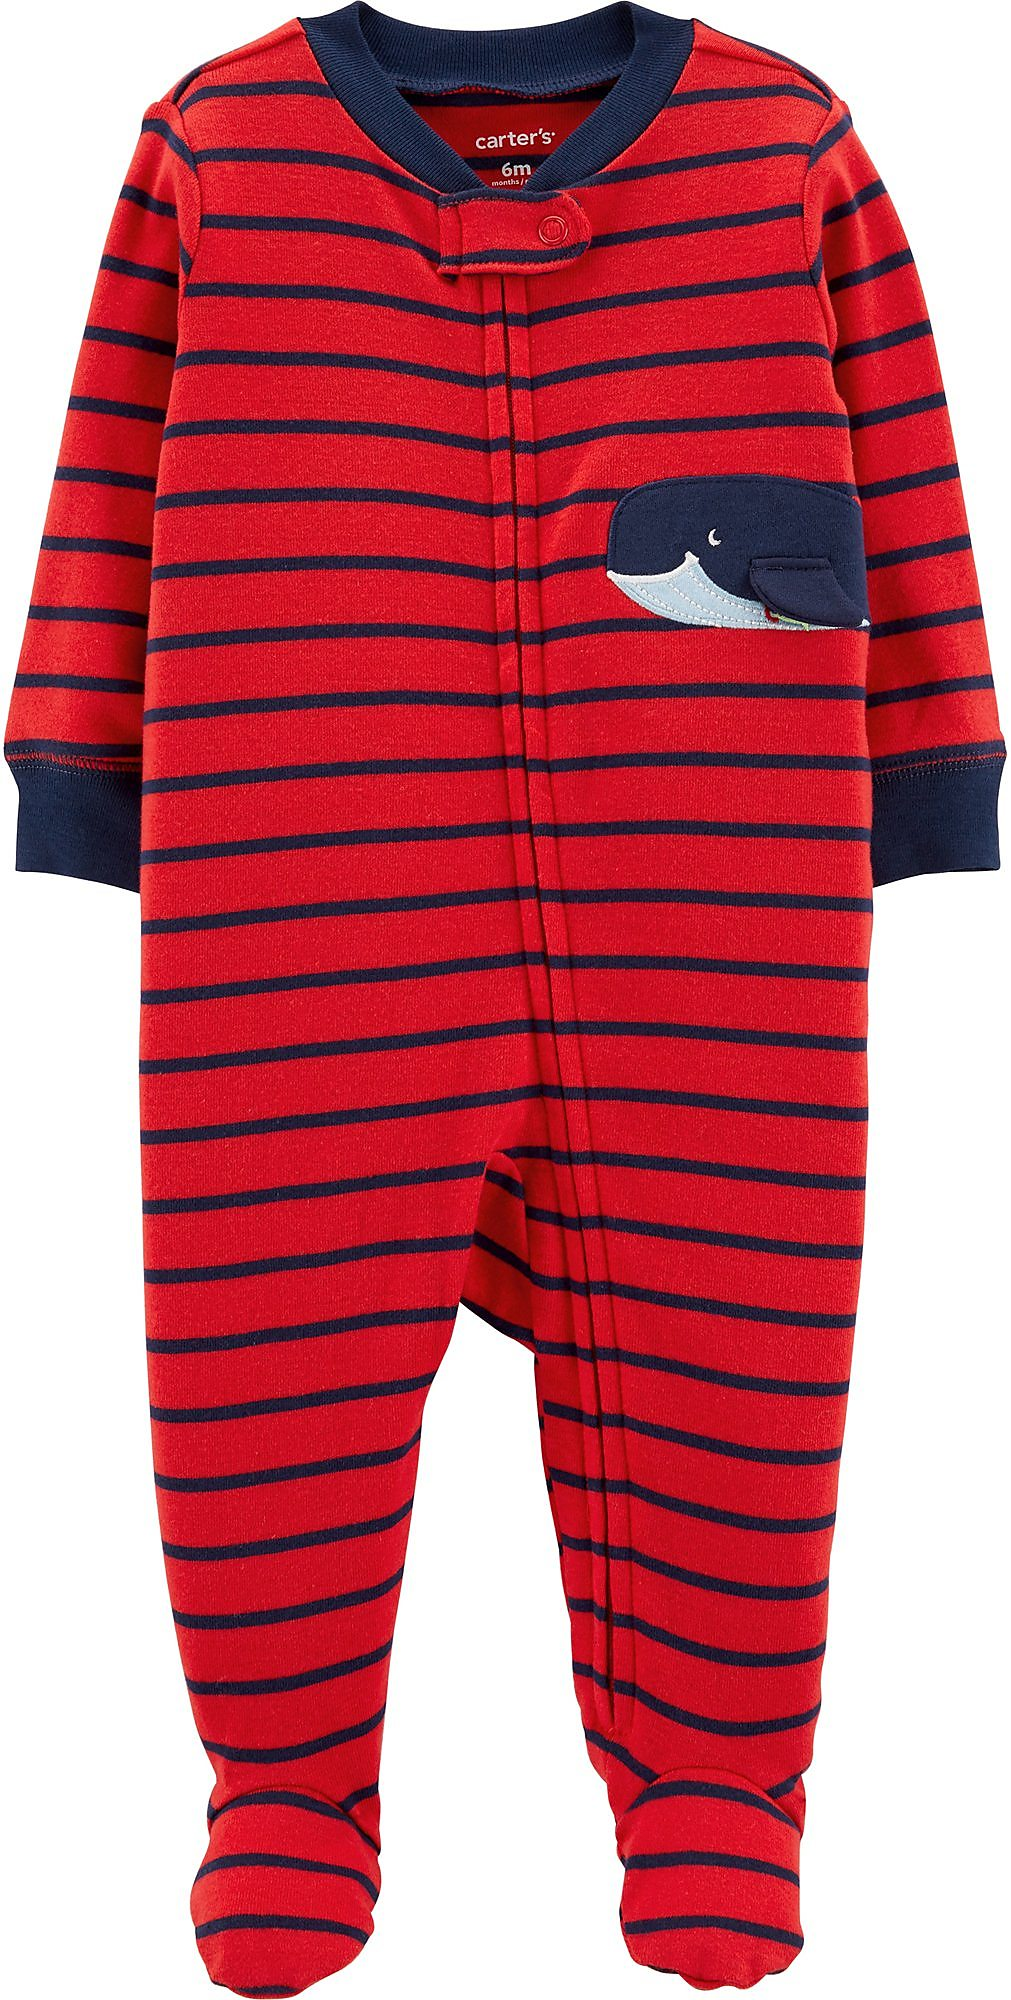 Carters Baby Boys Striped Whale Sleep Play Ebay